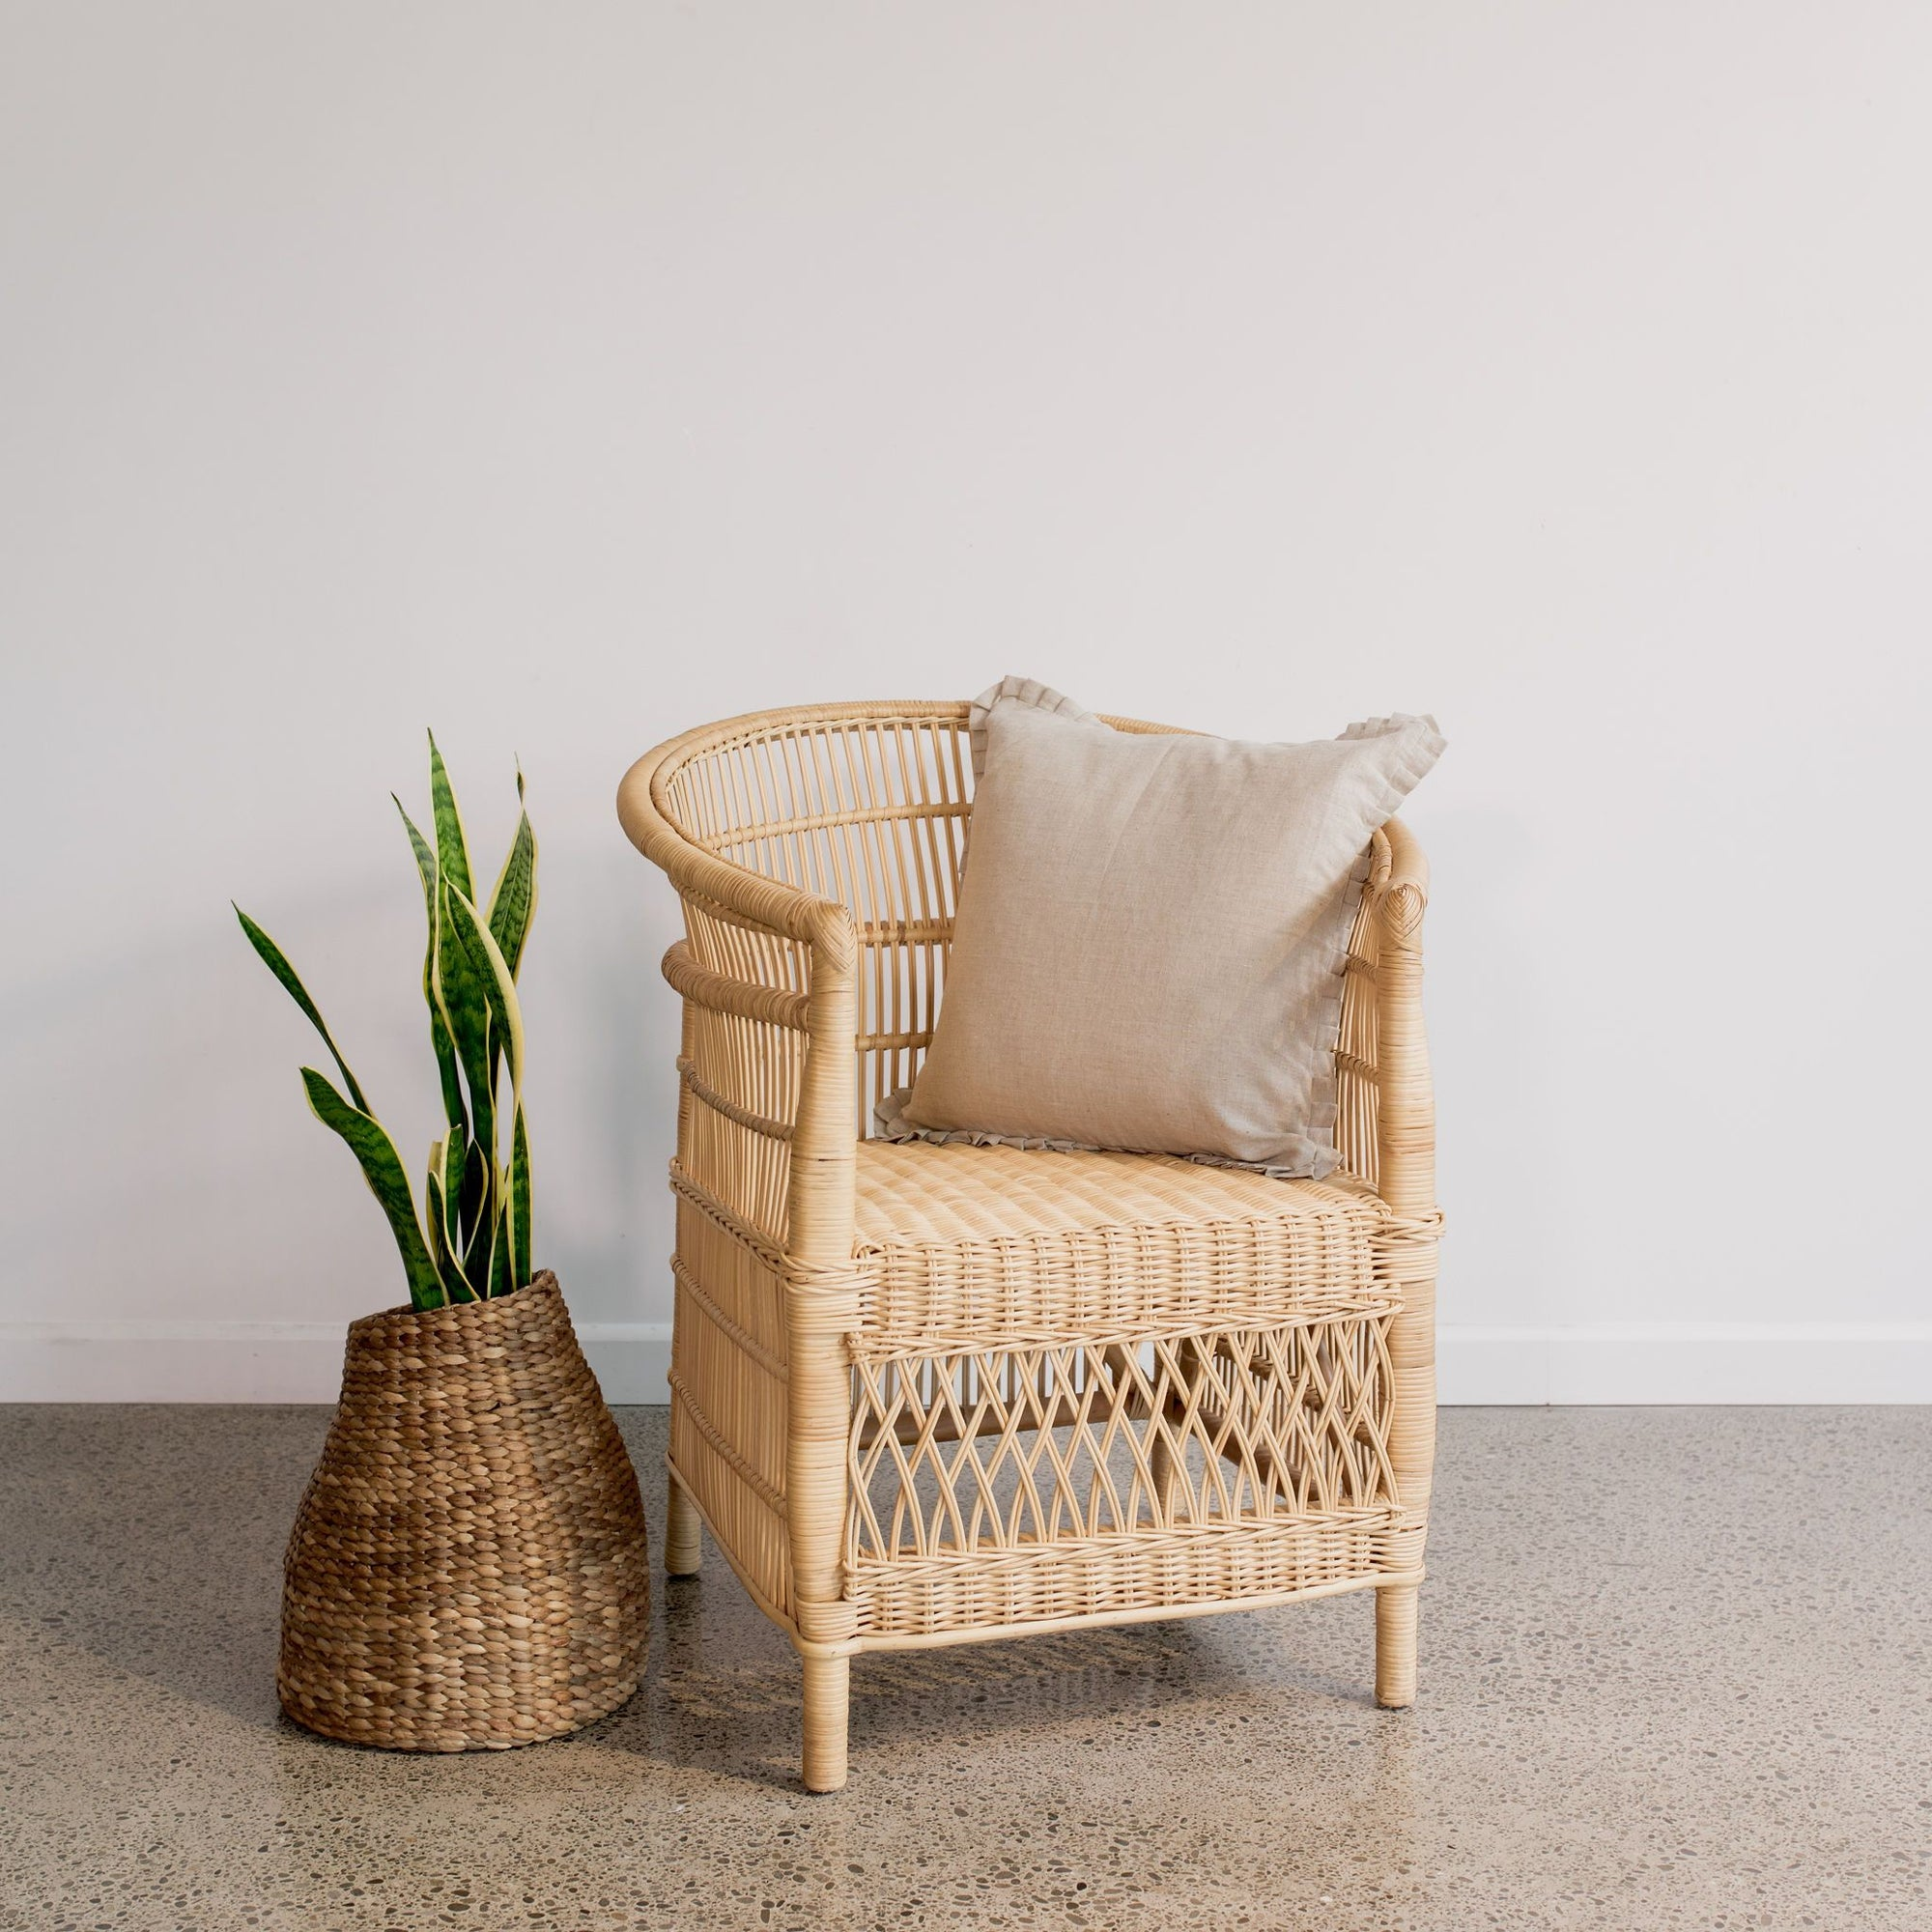 natural malawi bedroom chair furniture corcovado auckland store can rattan furniture christchurch new zealand